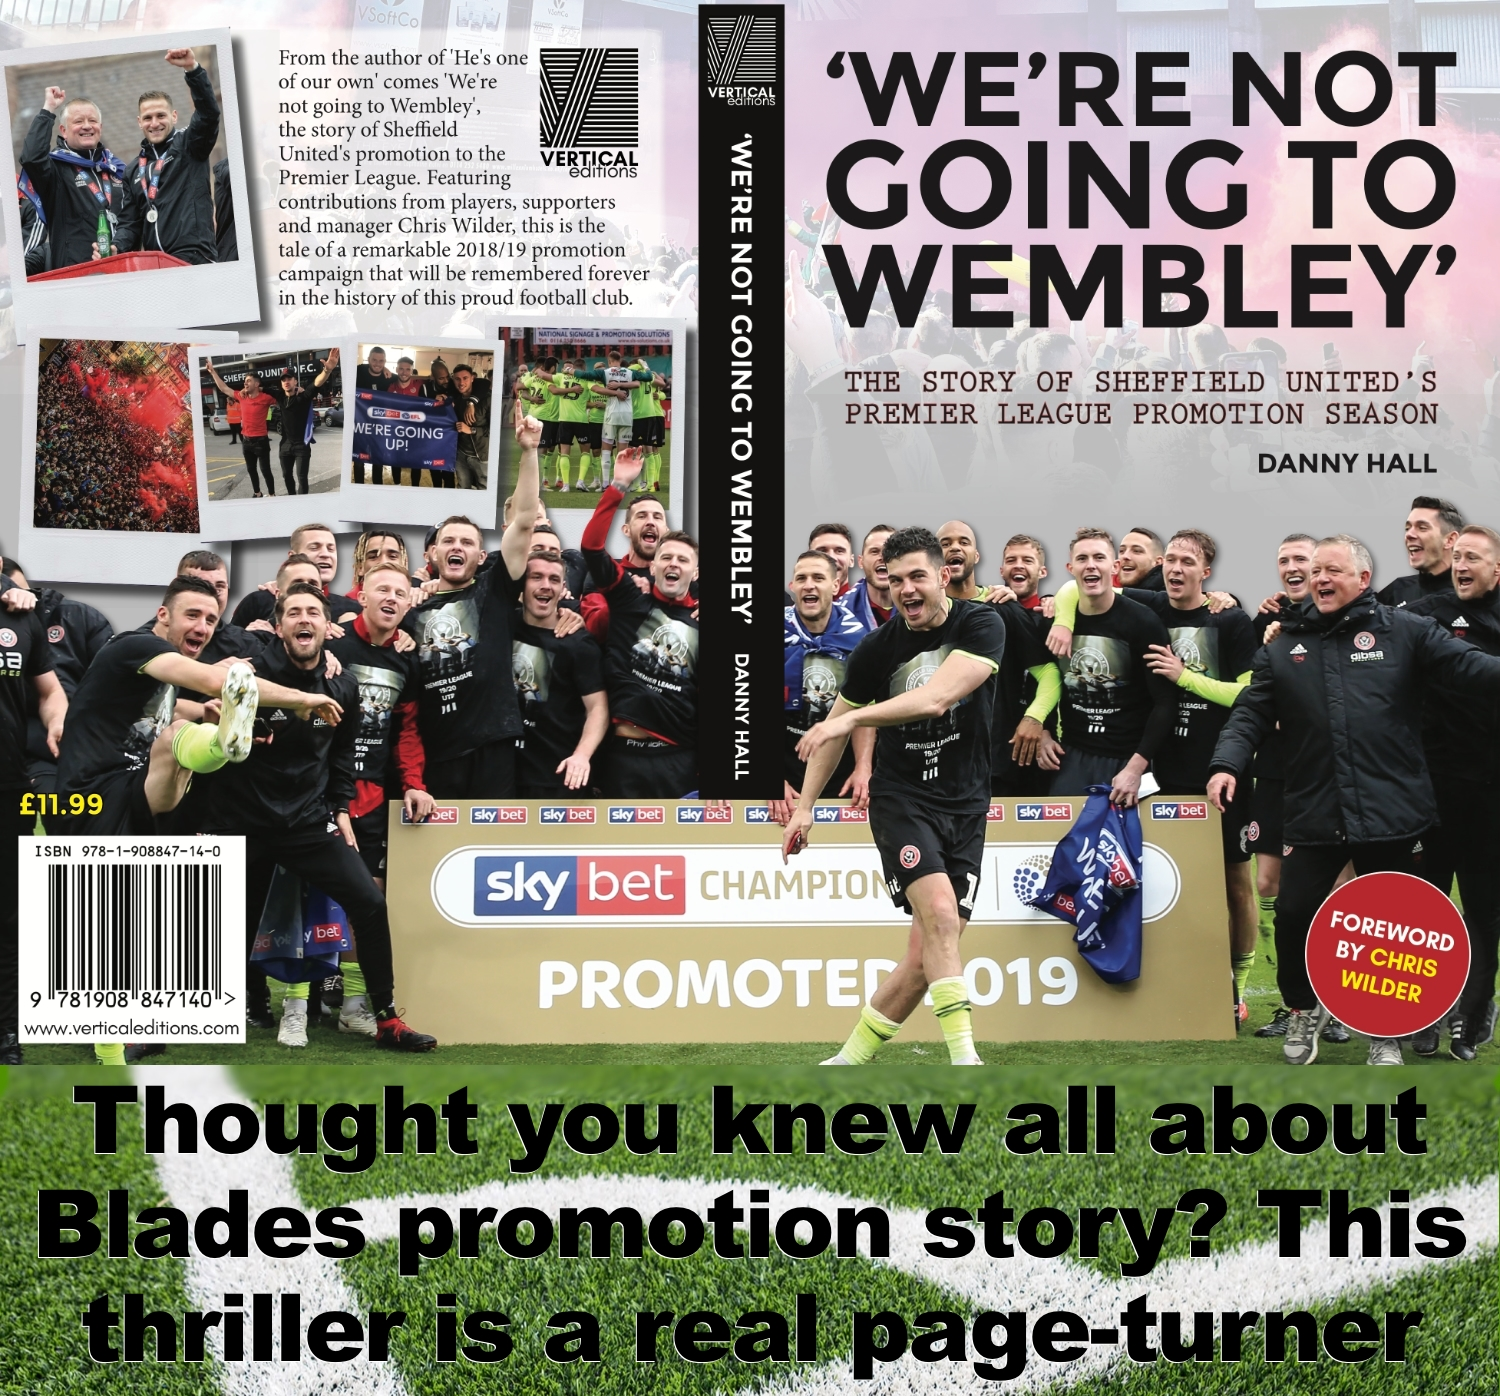 We're not going to Wembley – Remarkable story of Sheffield United's promotion to Premier League